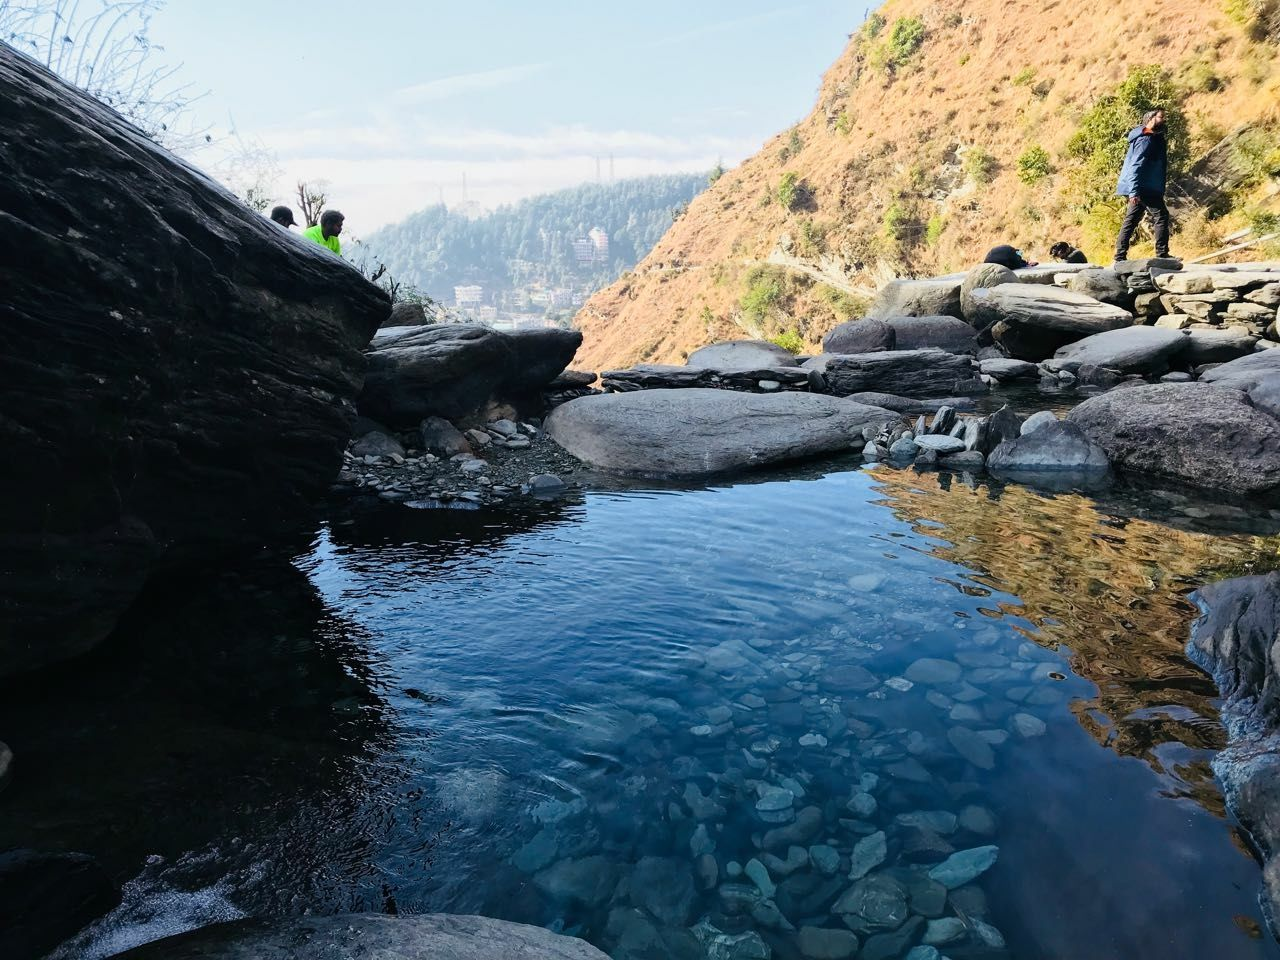 Photo of Mclodganj - Triund Trek By Paras Sahni